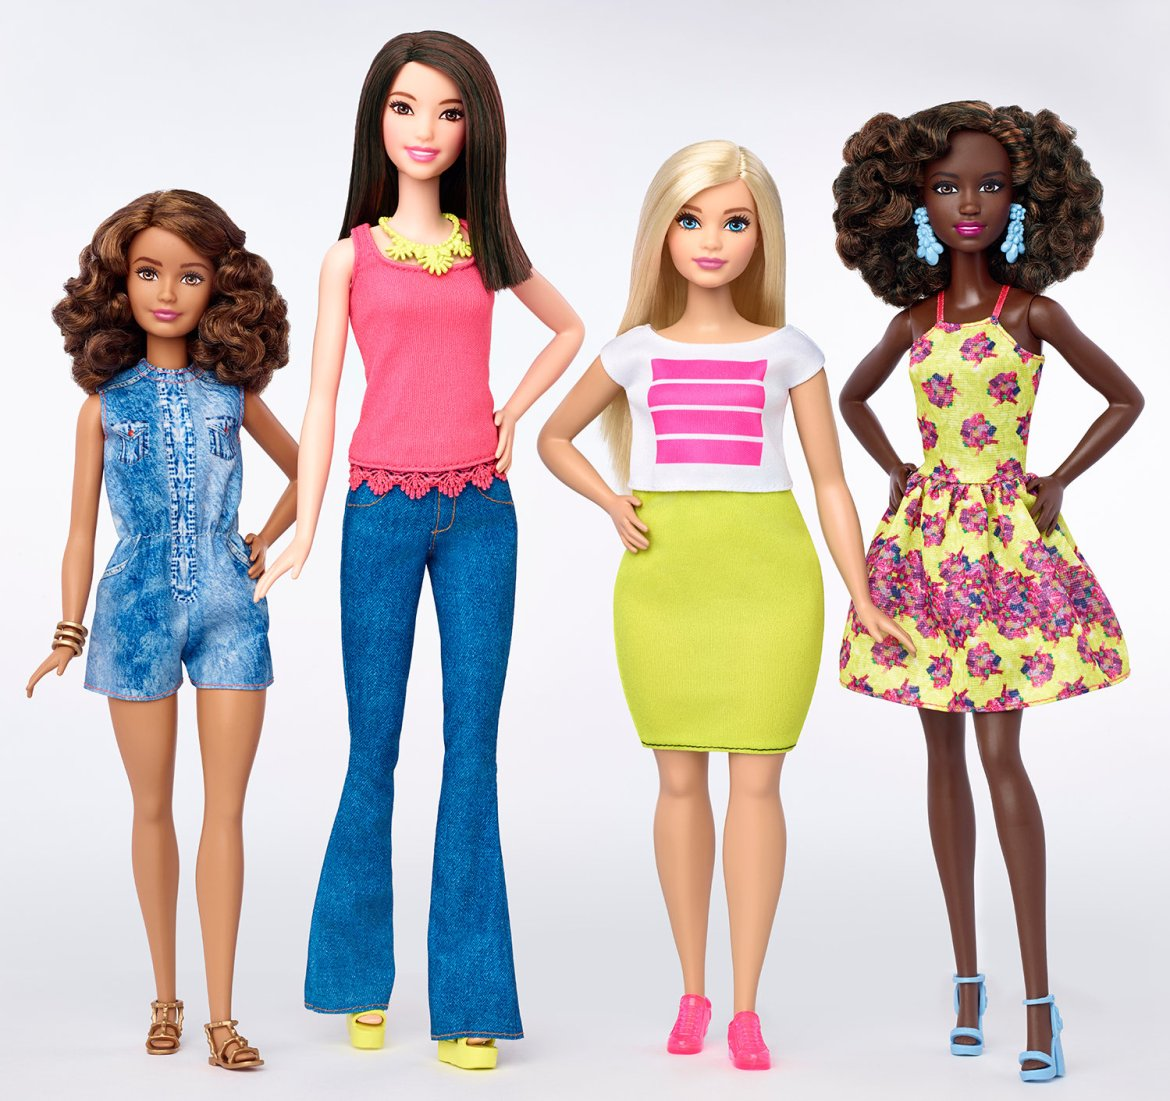 new-barbie